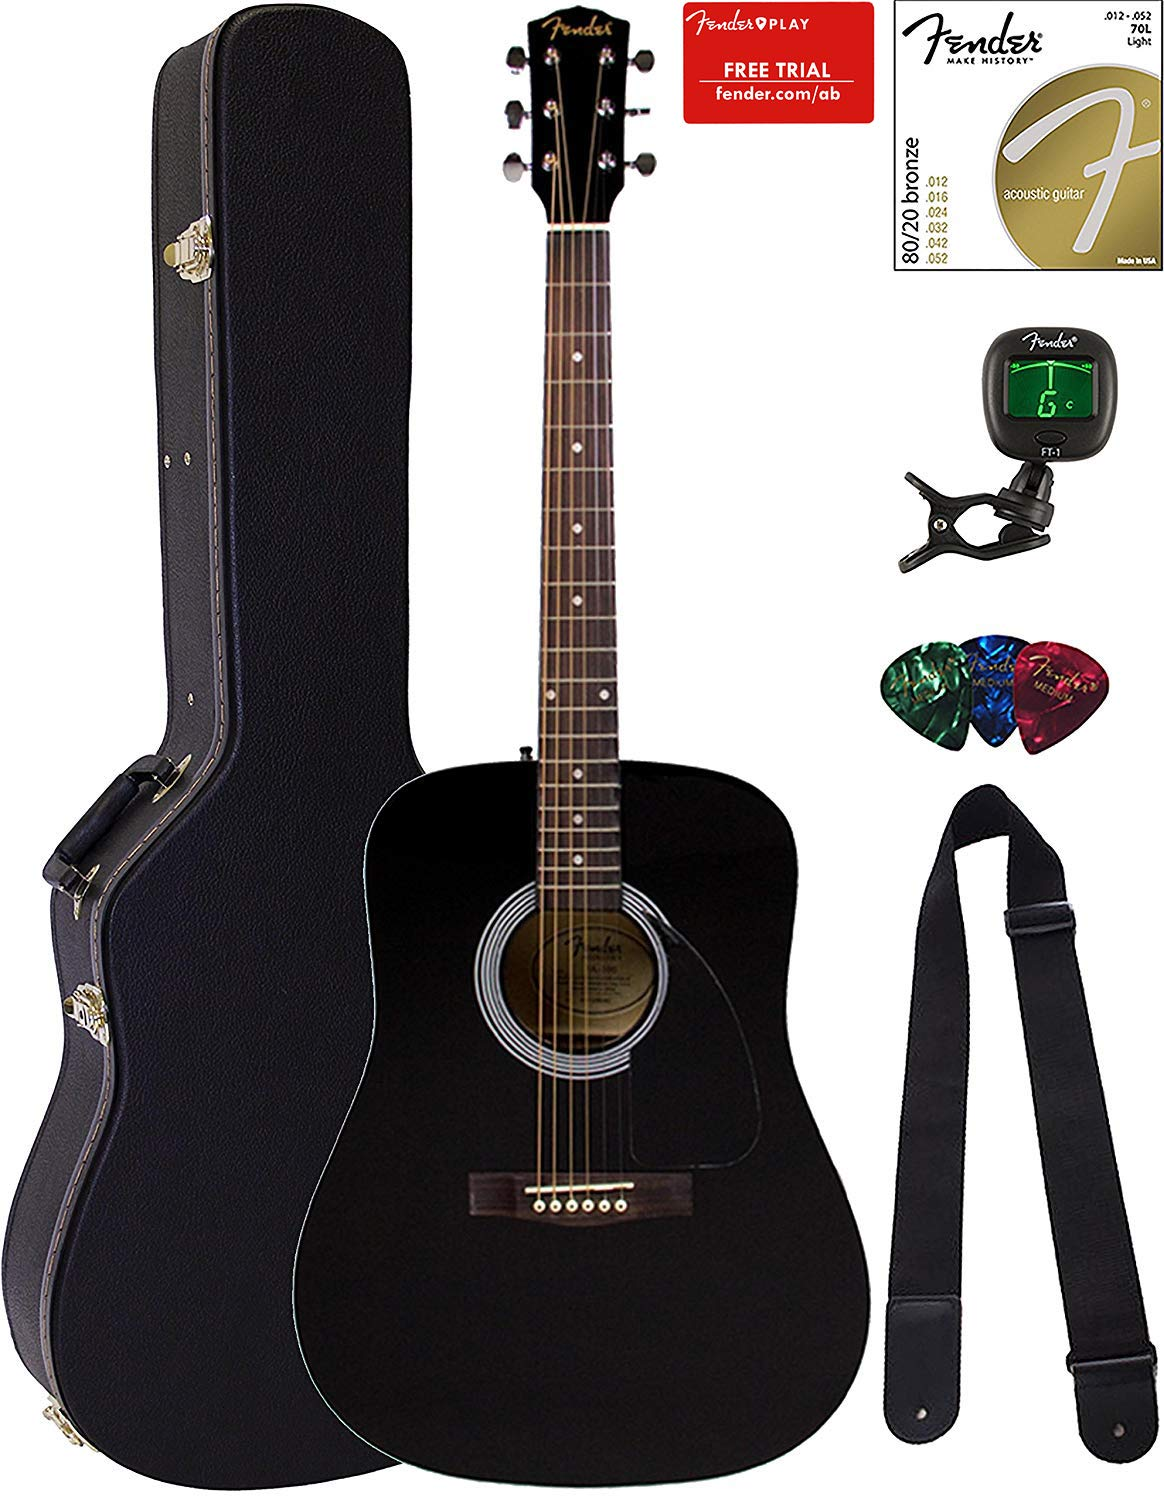 Fender FA-115 Dreadnought Acoustic Guitar - Black Bundle with Hard Case, Tuner, Strings, Strap, and Picks